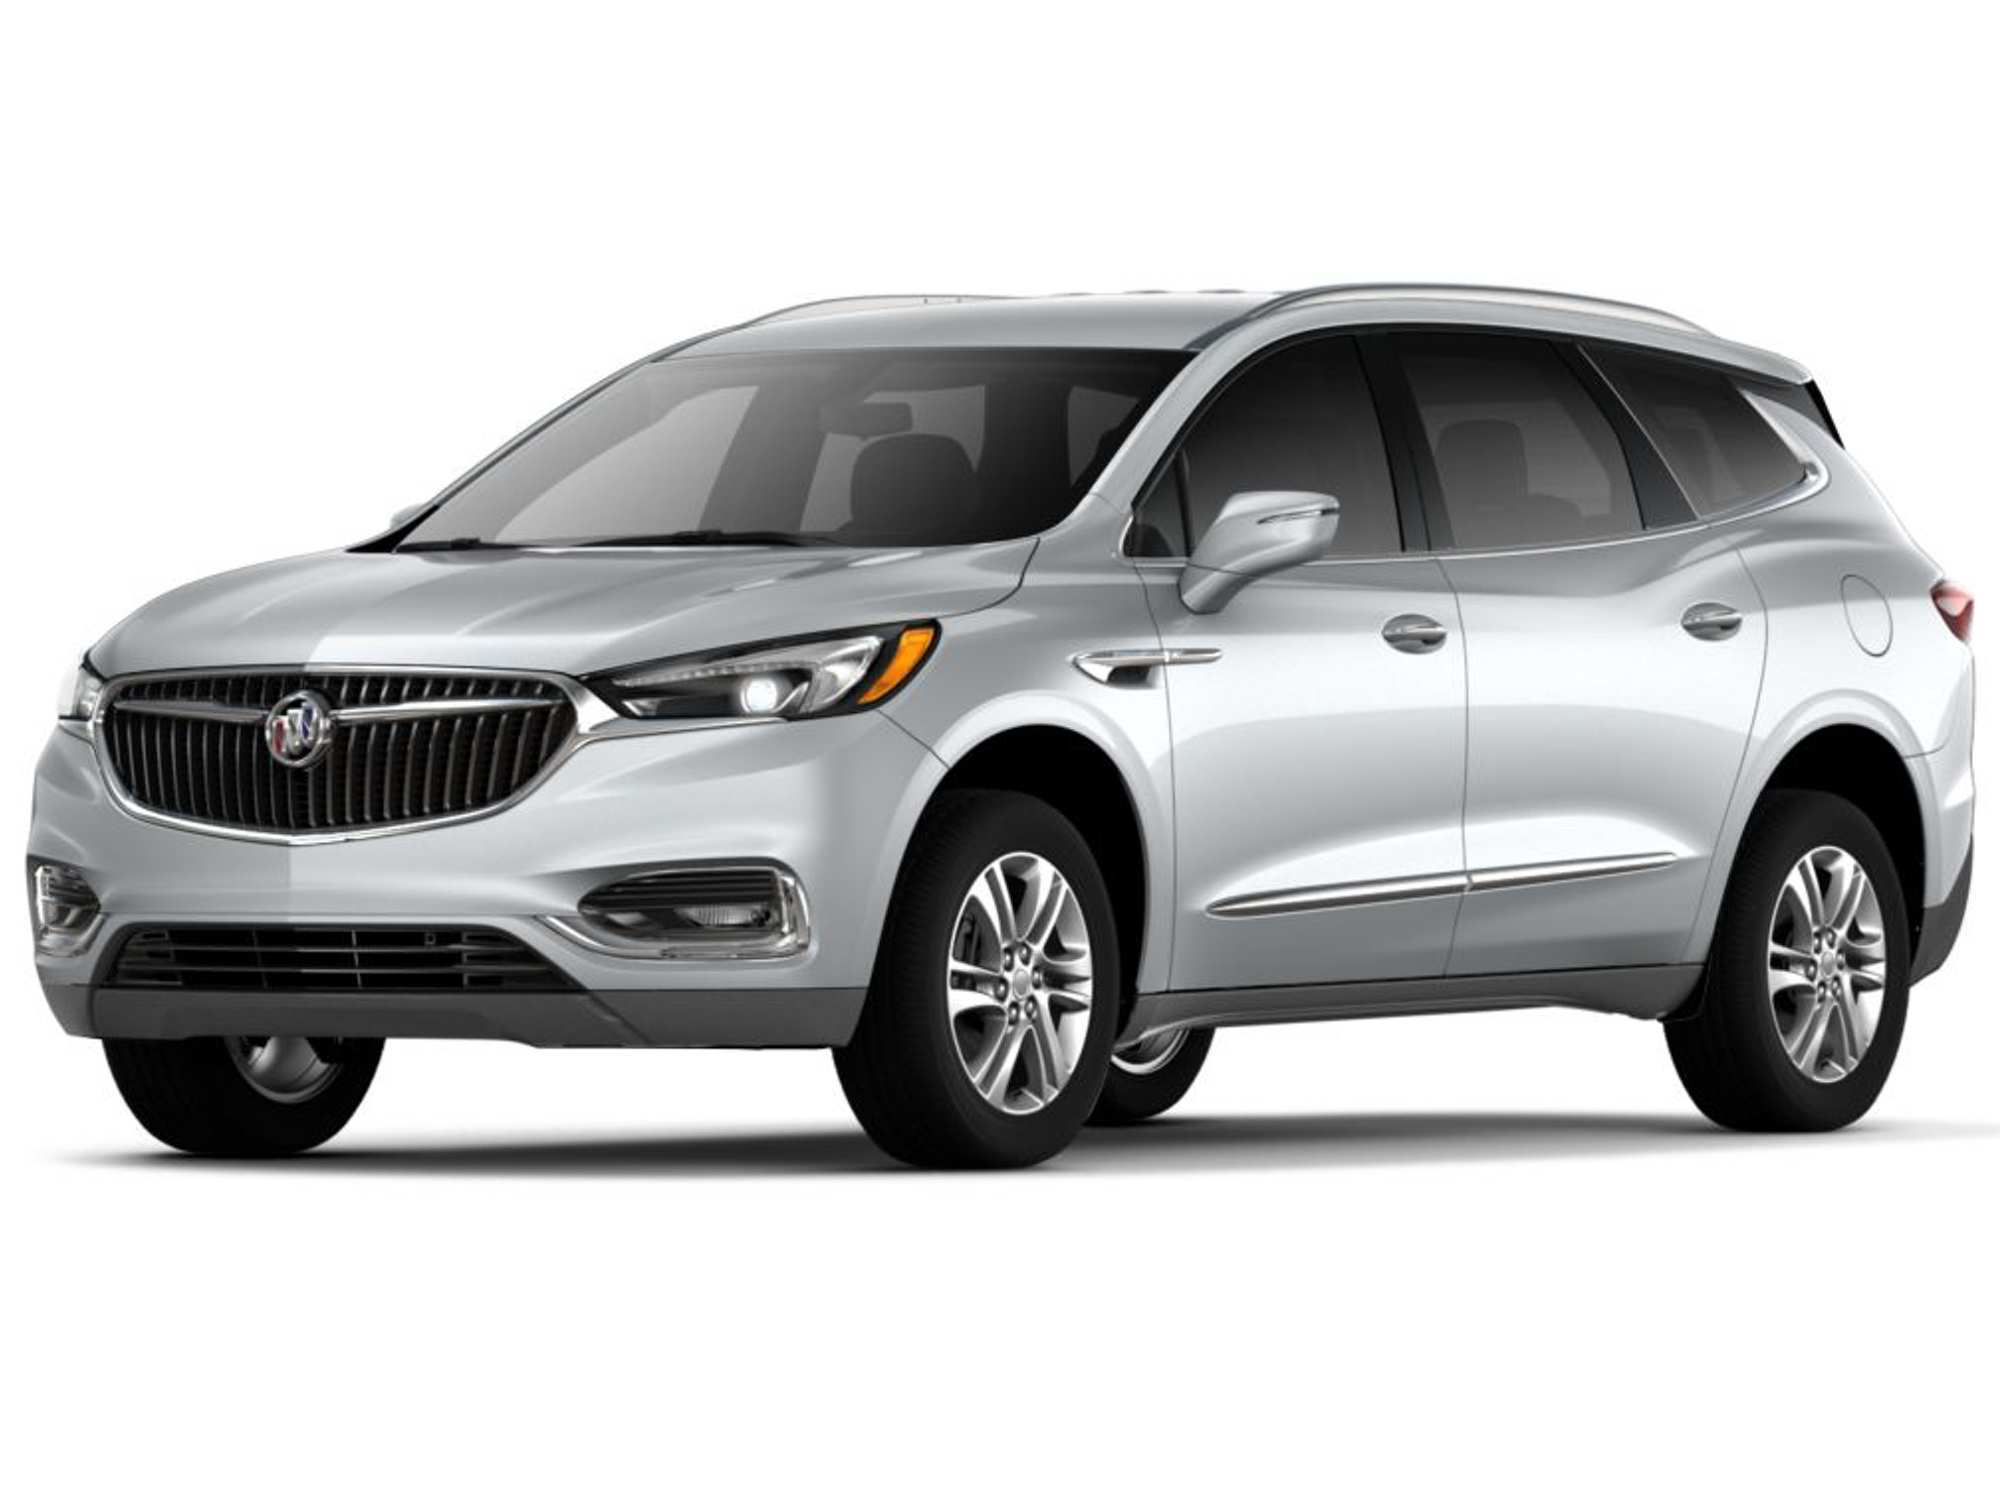 99 All New 2020 Buick Enclave Colors First Drive for 2020 Buick Enclave Colors